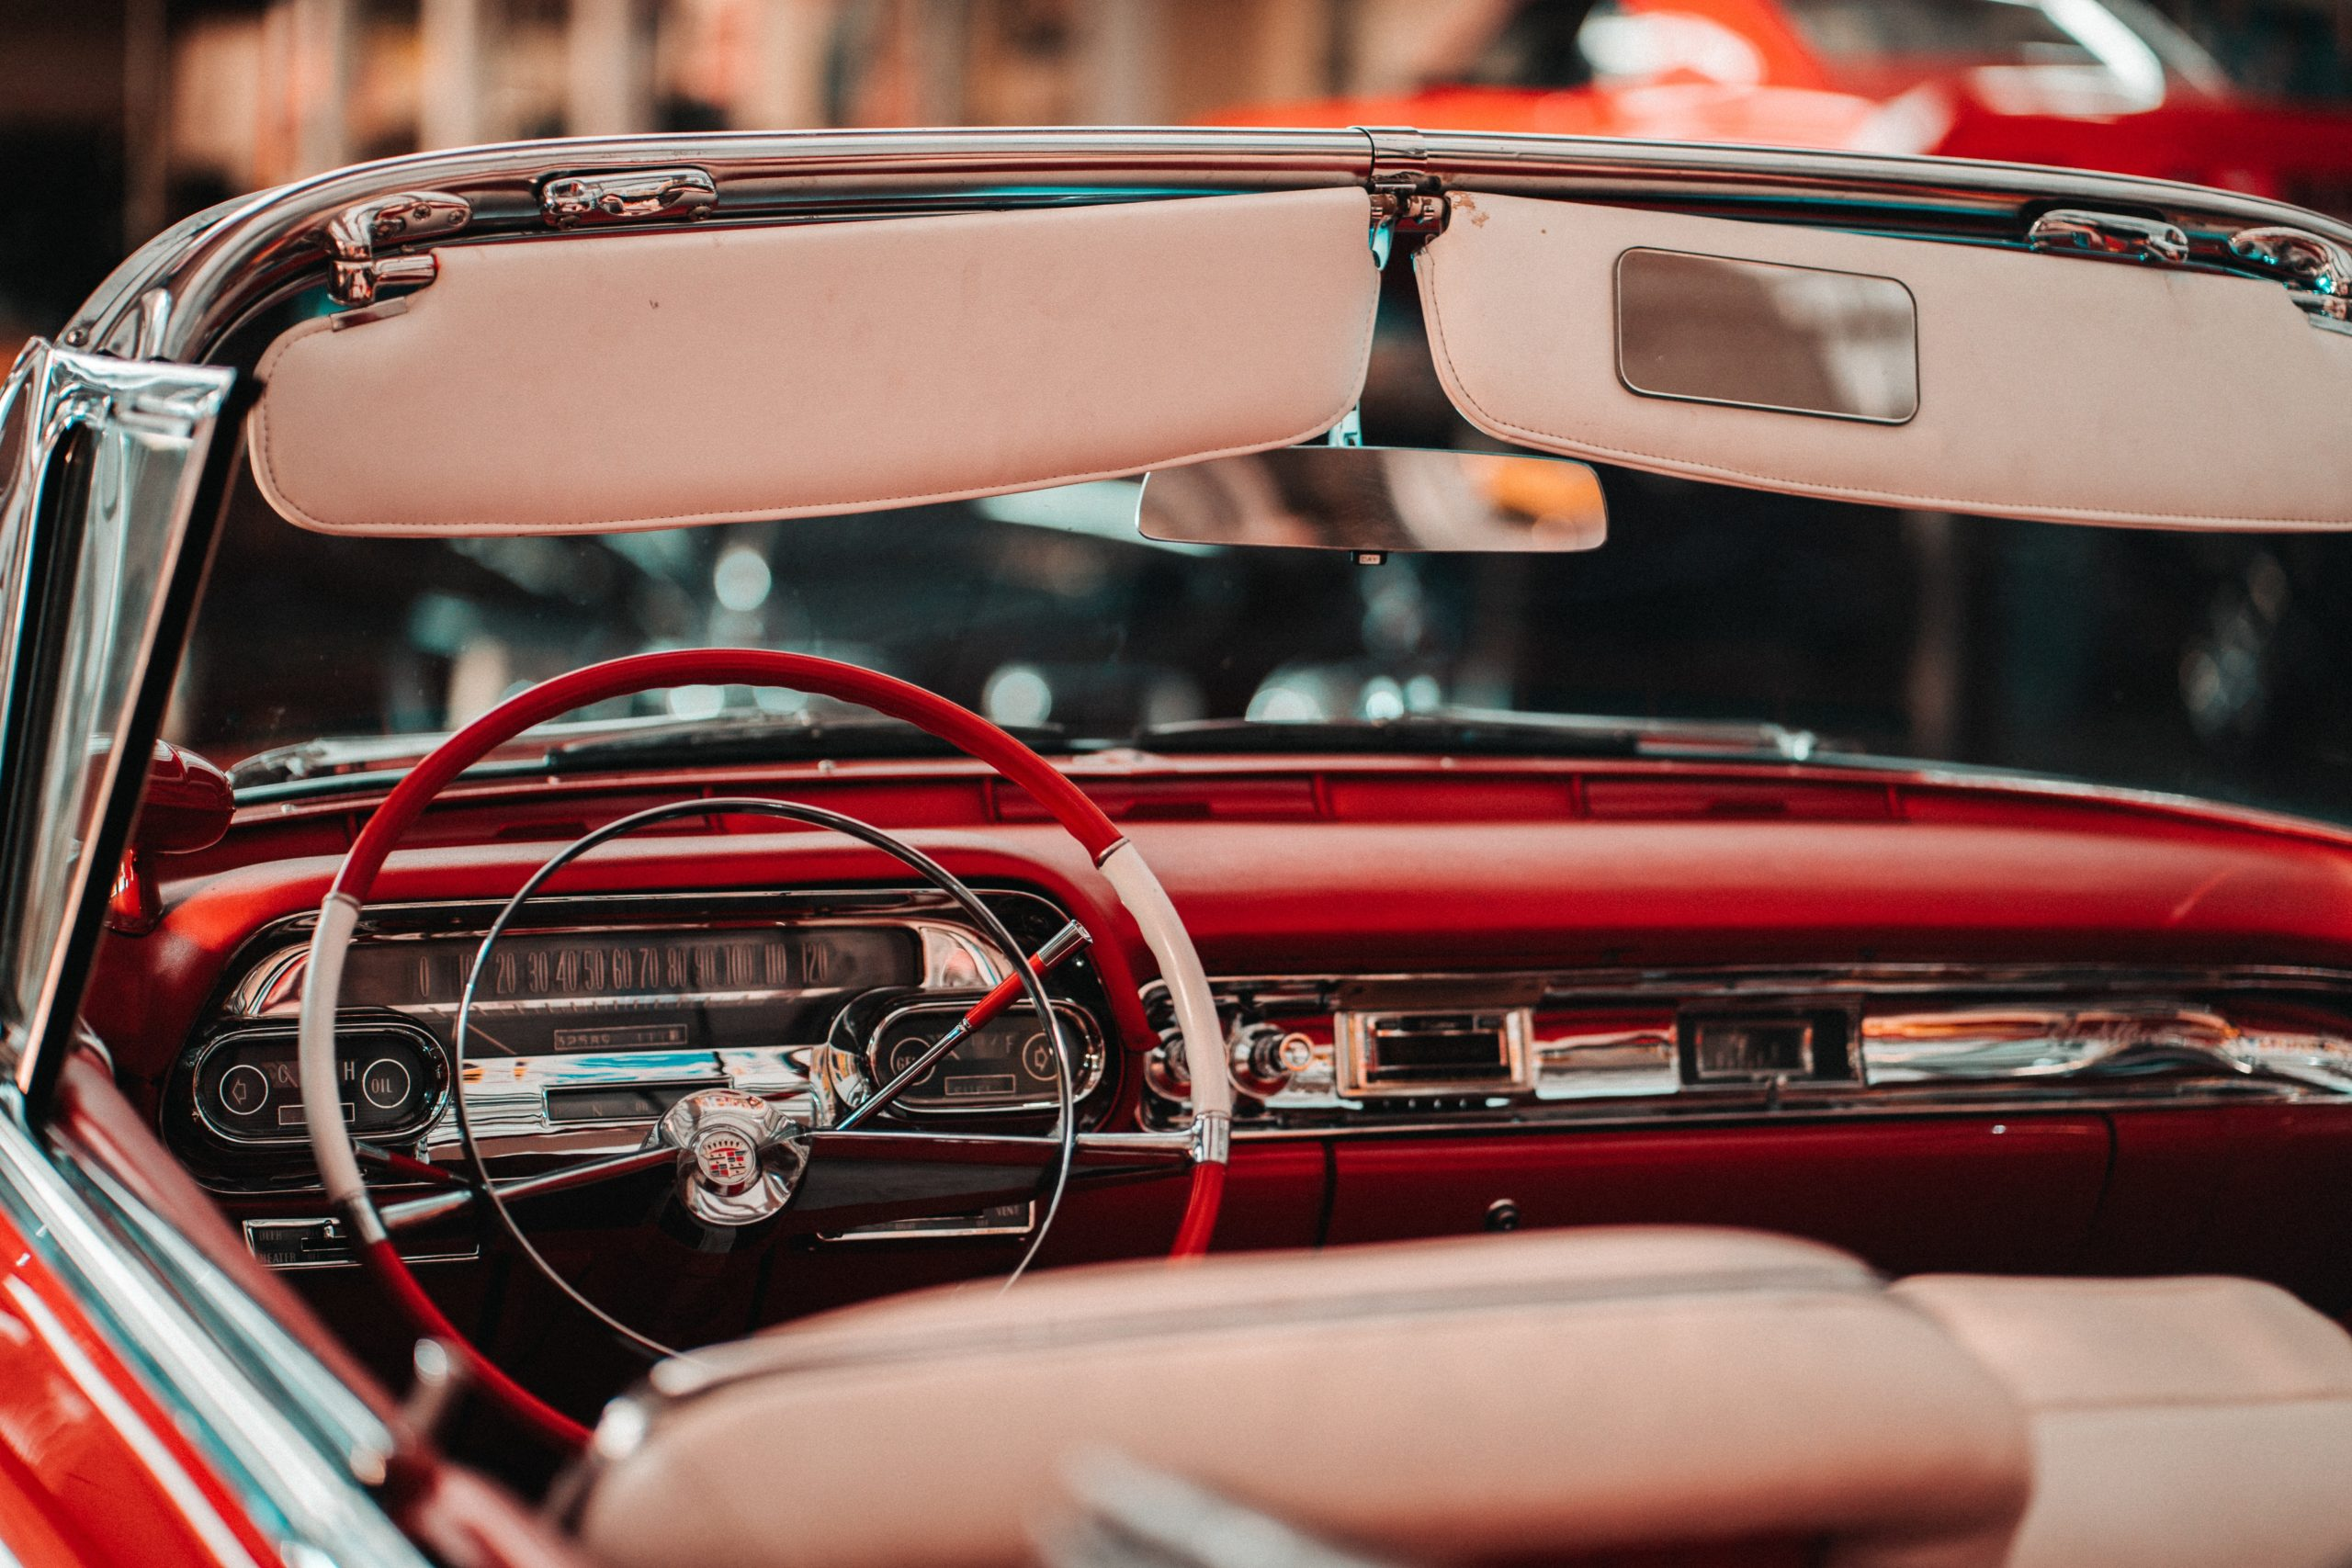 The Classic American Road Trip in a Classic American Car